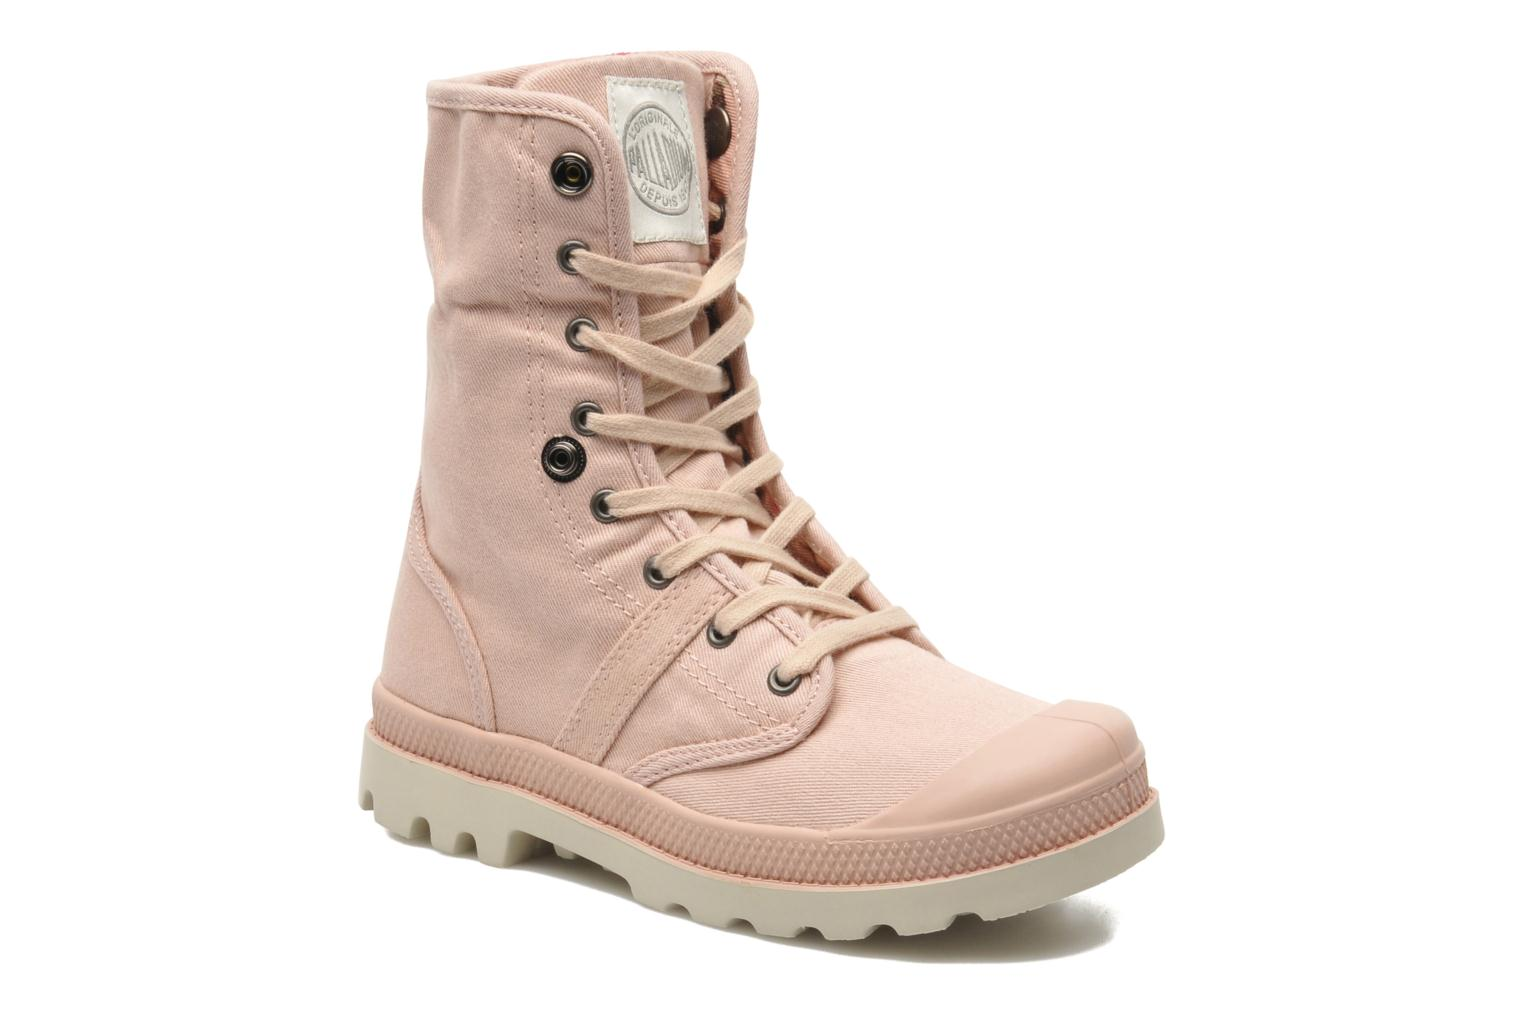 Bottines et boots Palladium Baggy Twl K Rose vue 3/4